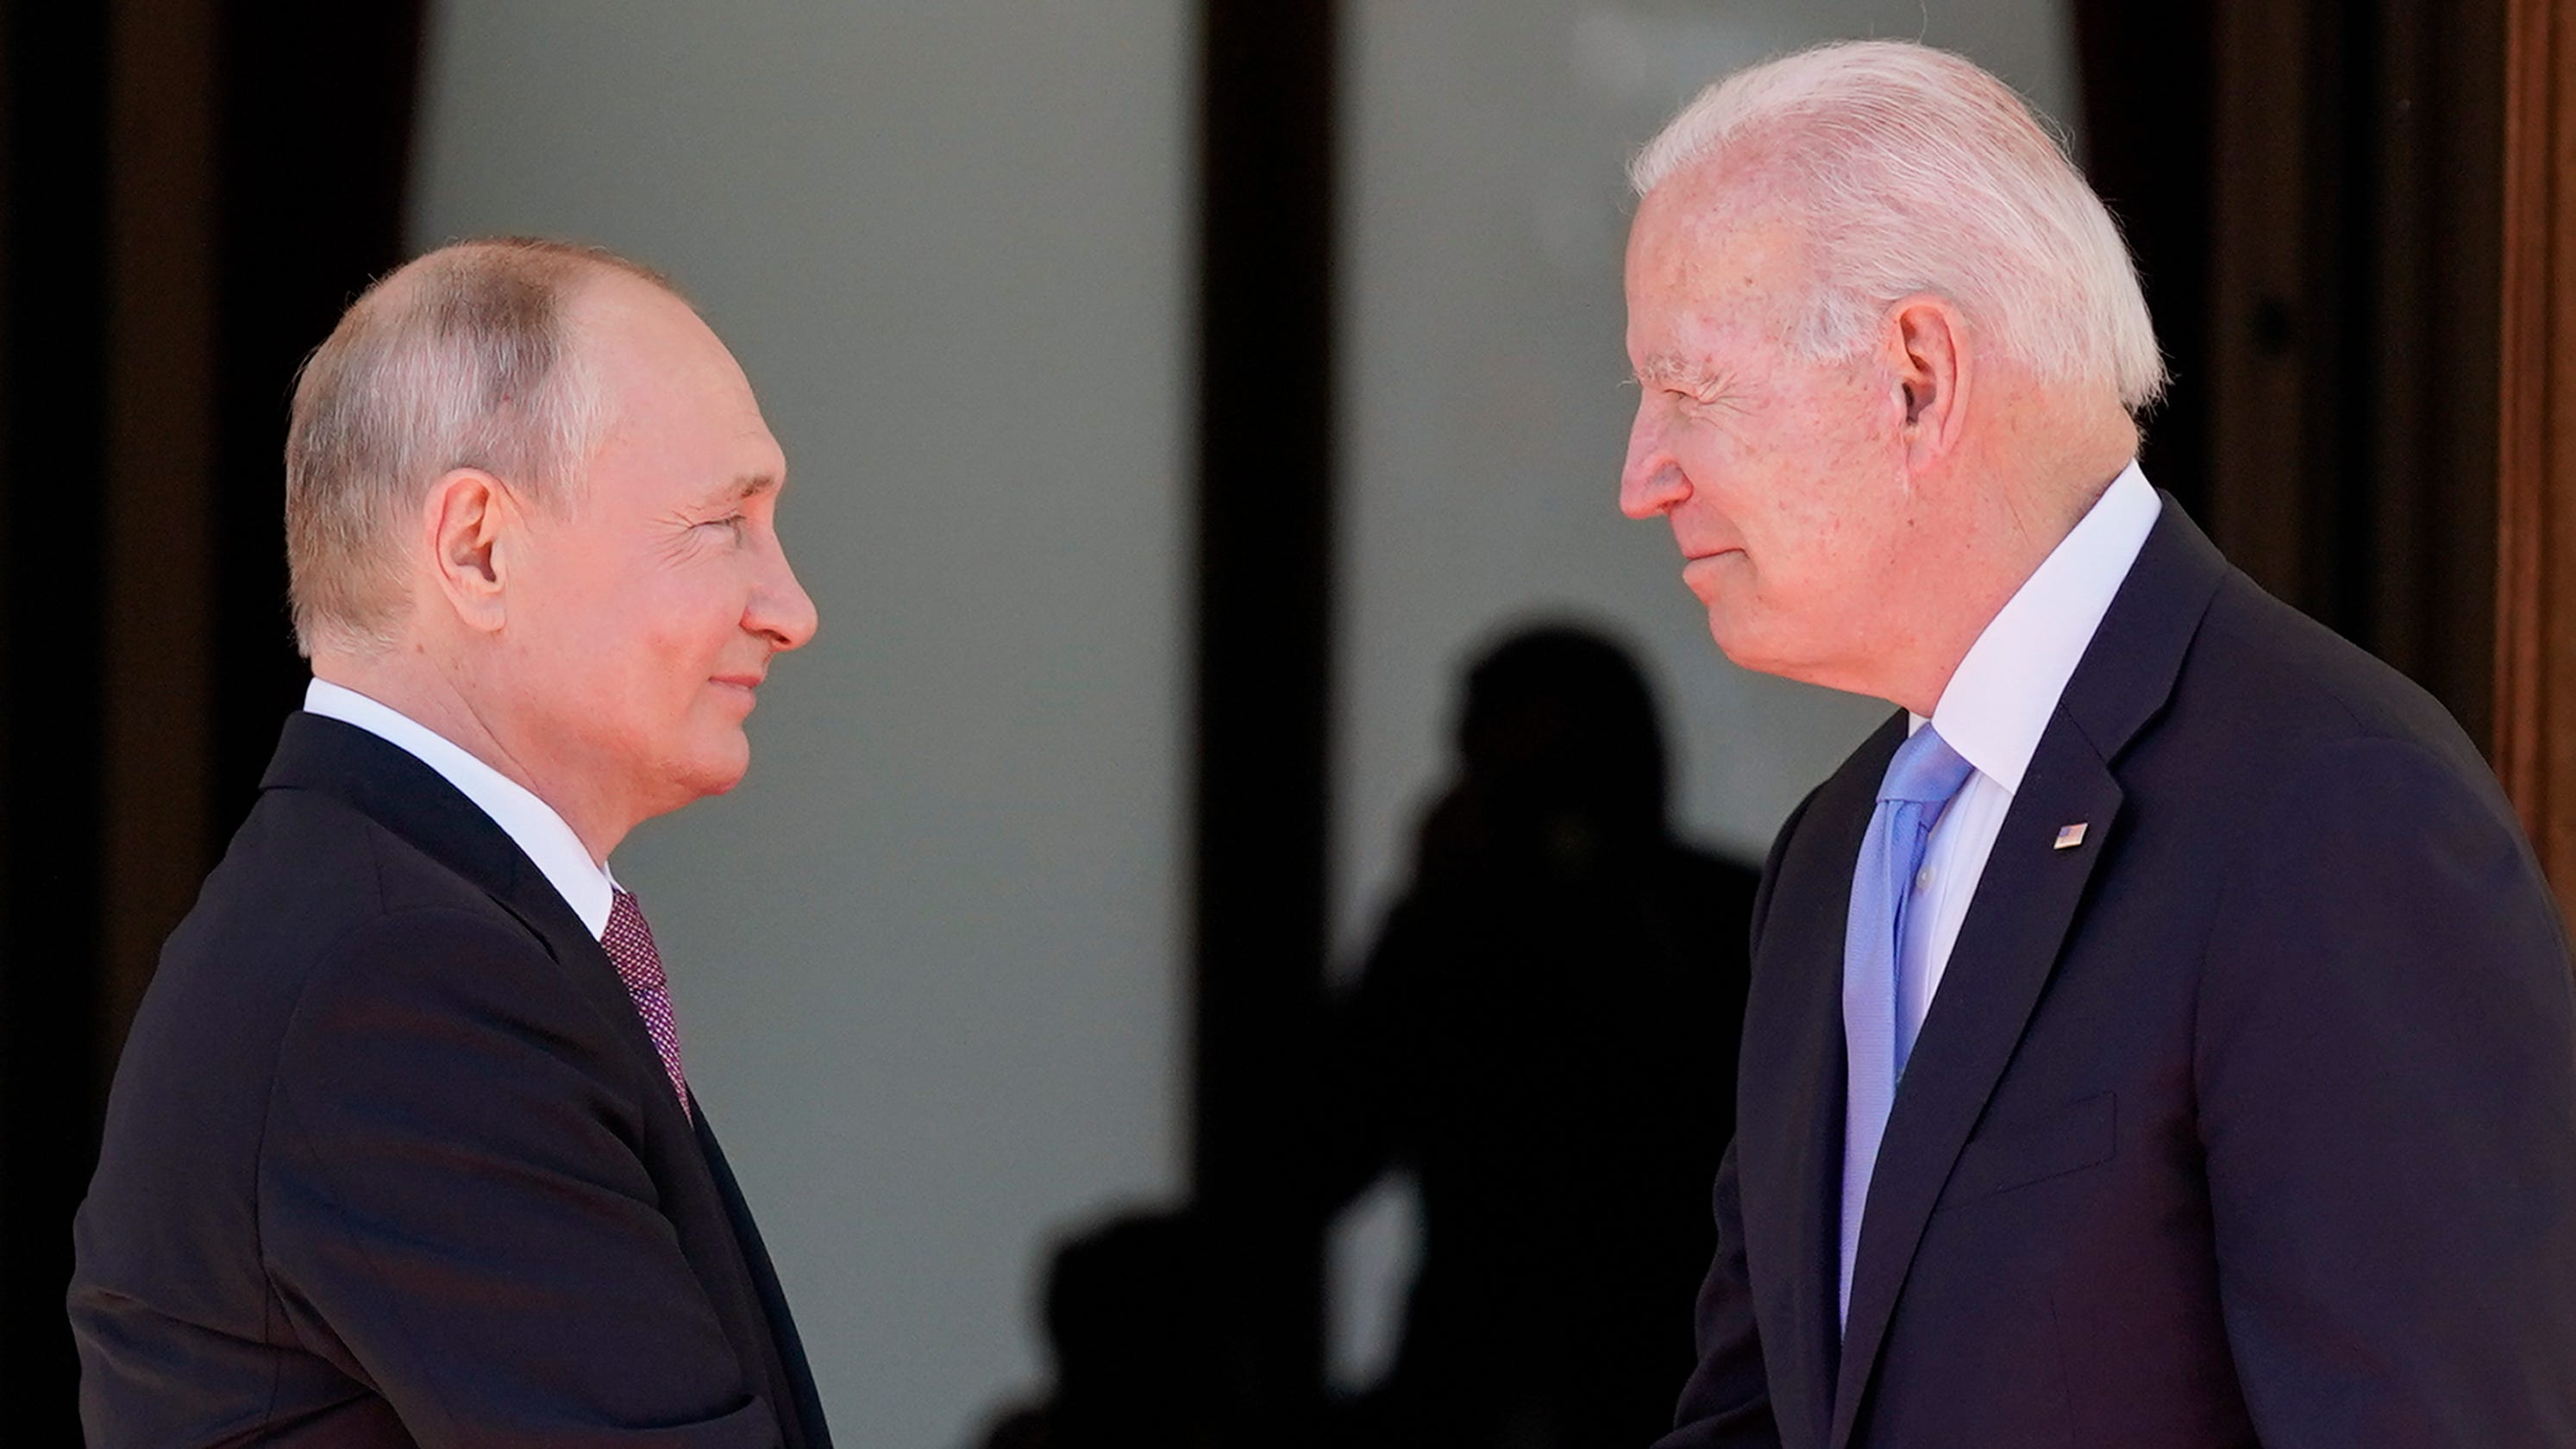 Biden warns Putin on human rights and cybersecurity in Geneva. US moral clarity is back.